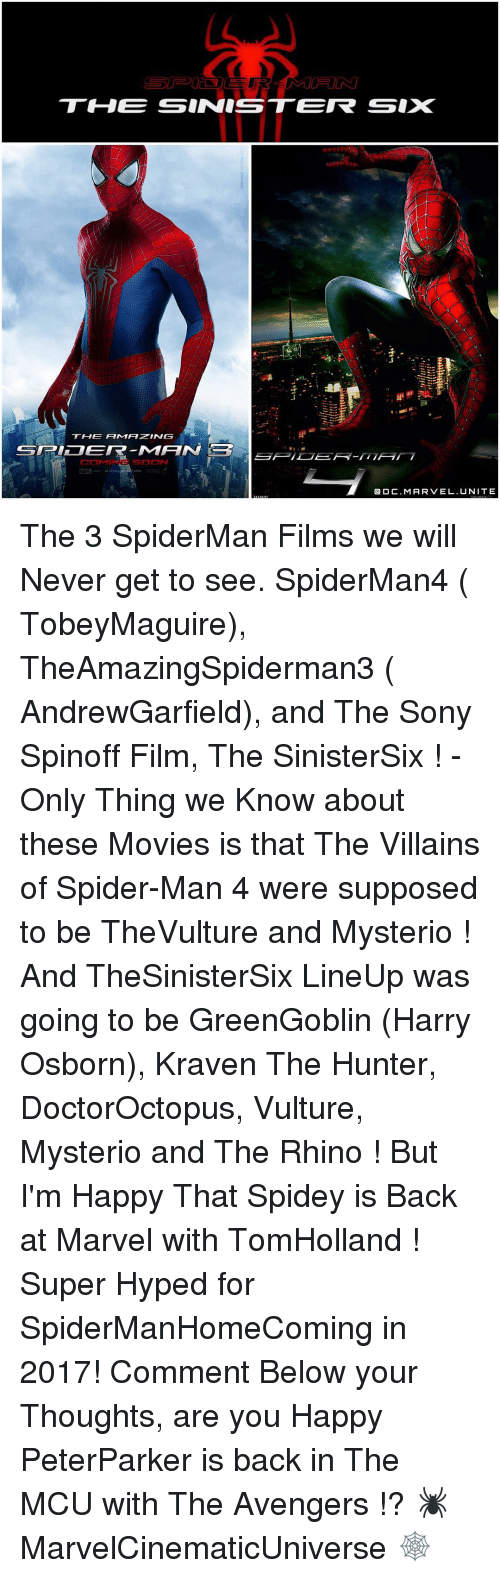 mysterio: TH00E SINNISSTEIR SIX  Q OC. MARVEL. UNITE The 3 SpiderMan Films we will Never get to see. SpiderMan4 ( TobeyMaguire), TheAmazingSpiderman3 ( AndrewGarfield), and The Sony Spinoff Film, The SinisterSix ! - Only Thing we Know about these Movies is that The Villains of Spider-Man 4 were supposed to be TheVulture and Mysterio ! And TheSinisterSix LineUp was going to be GreenGoblin (Harry Osborn), Kraven The Hunter, DoctorOctopus, Vulture, Mysterio and The Rhino ! But I'm Happy That Spidey is Back at Marvel with TomHolland ! Super Hyped for SpiderManHomeComing in 2017! Comment Below your Thoughts, are you Happy PeterParker is back in The MCU with The Avengers !? 🕷 MarvelCinematicUniverse 🕸